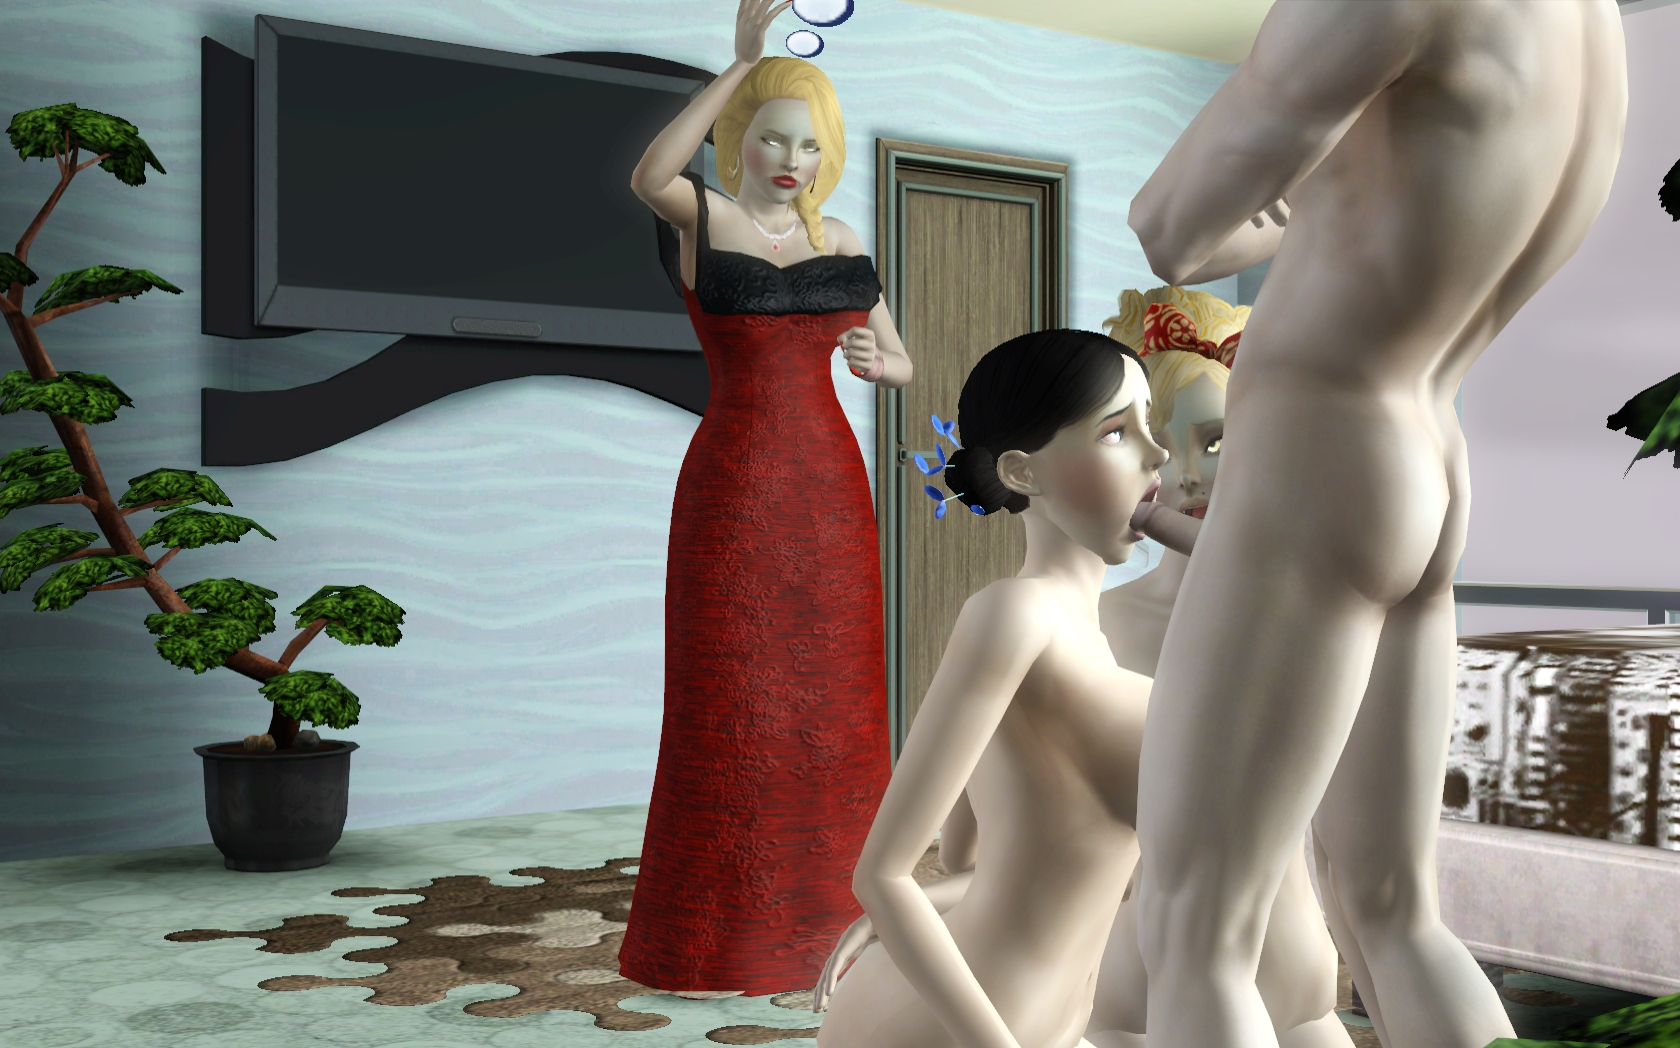 The sims 3 porn mod adult pictures